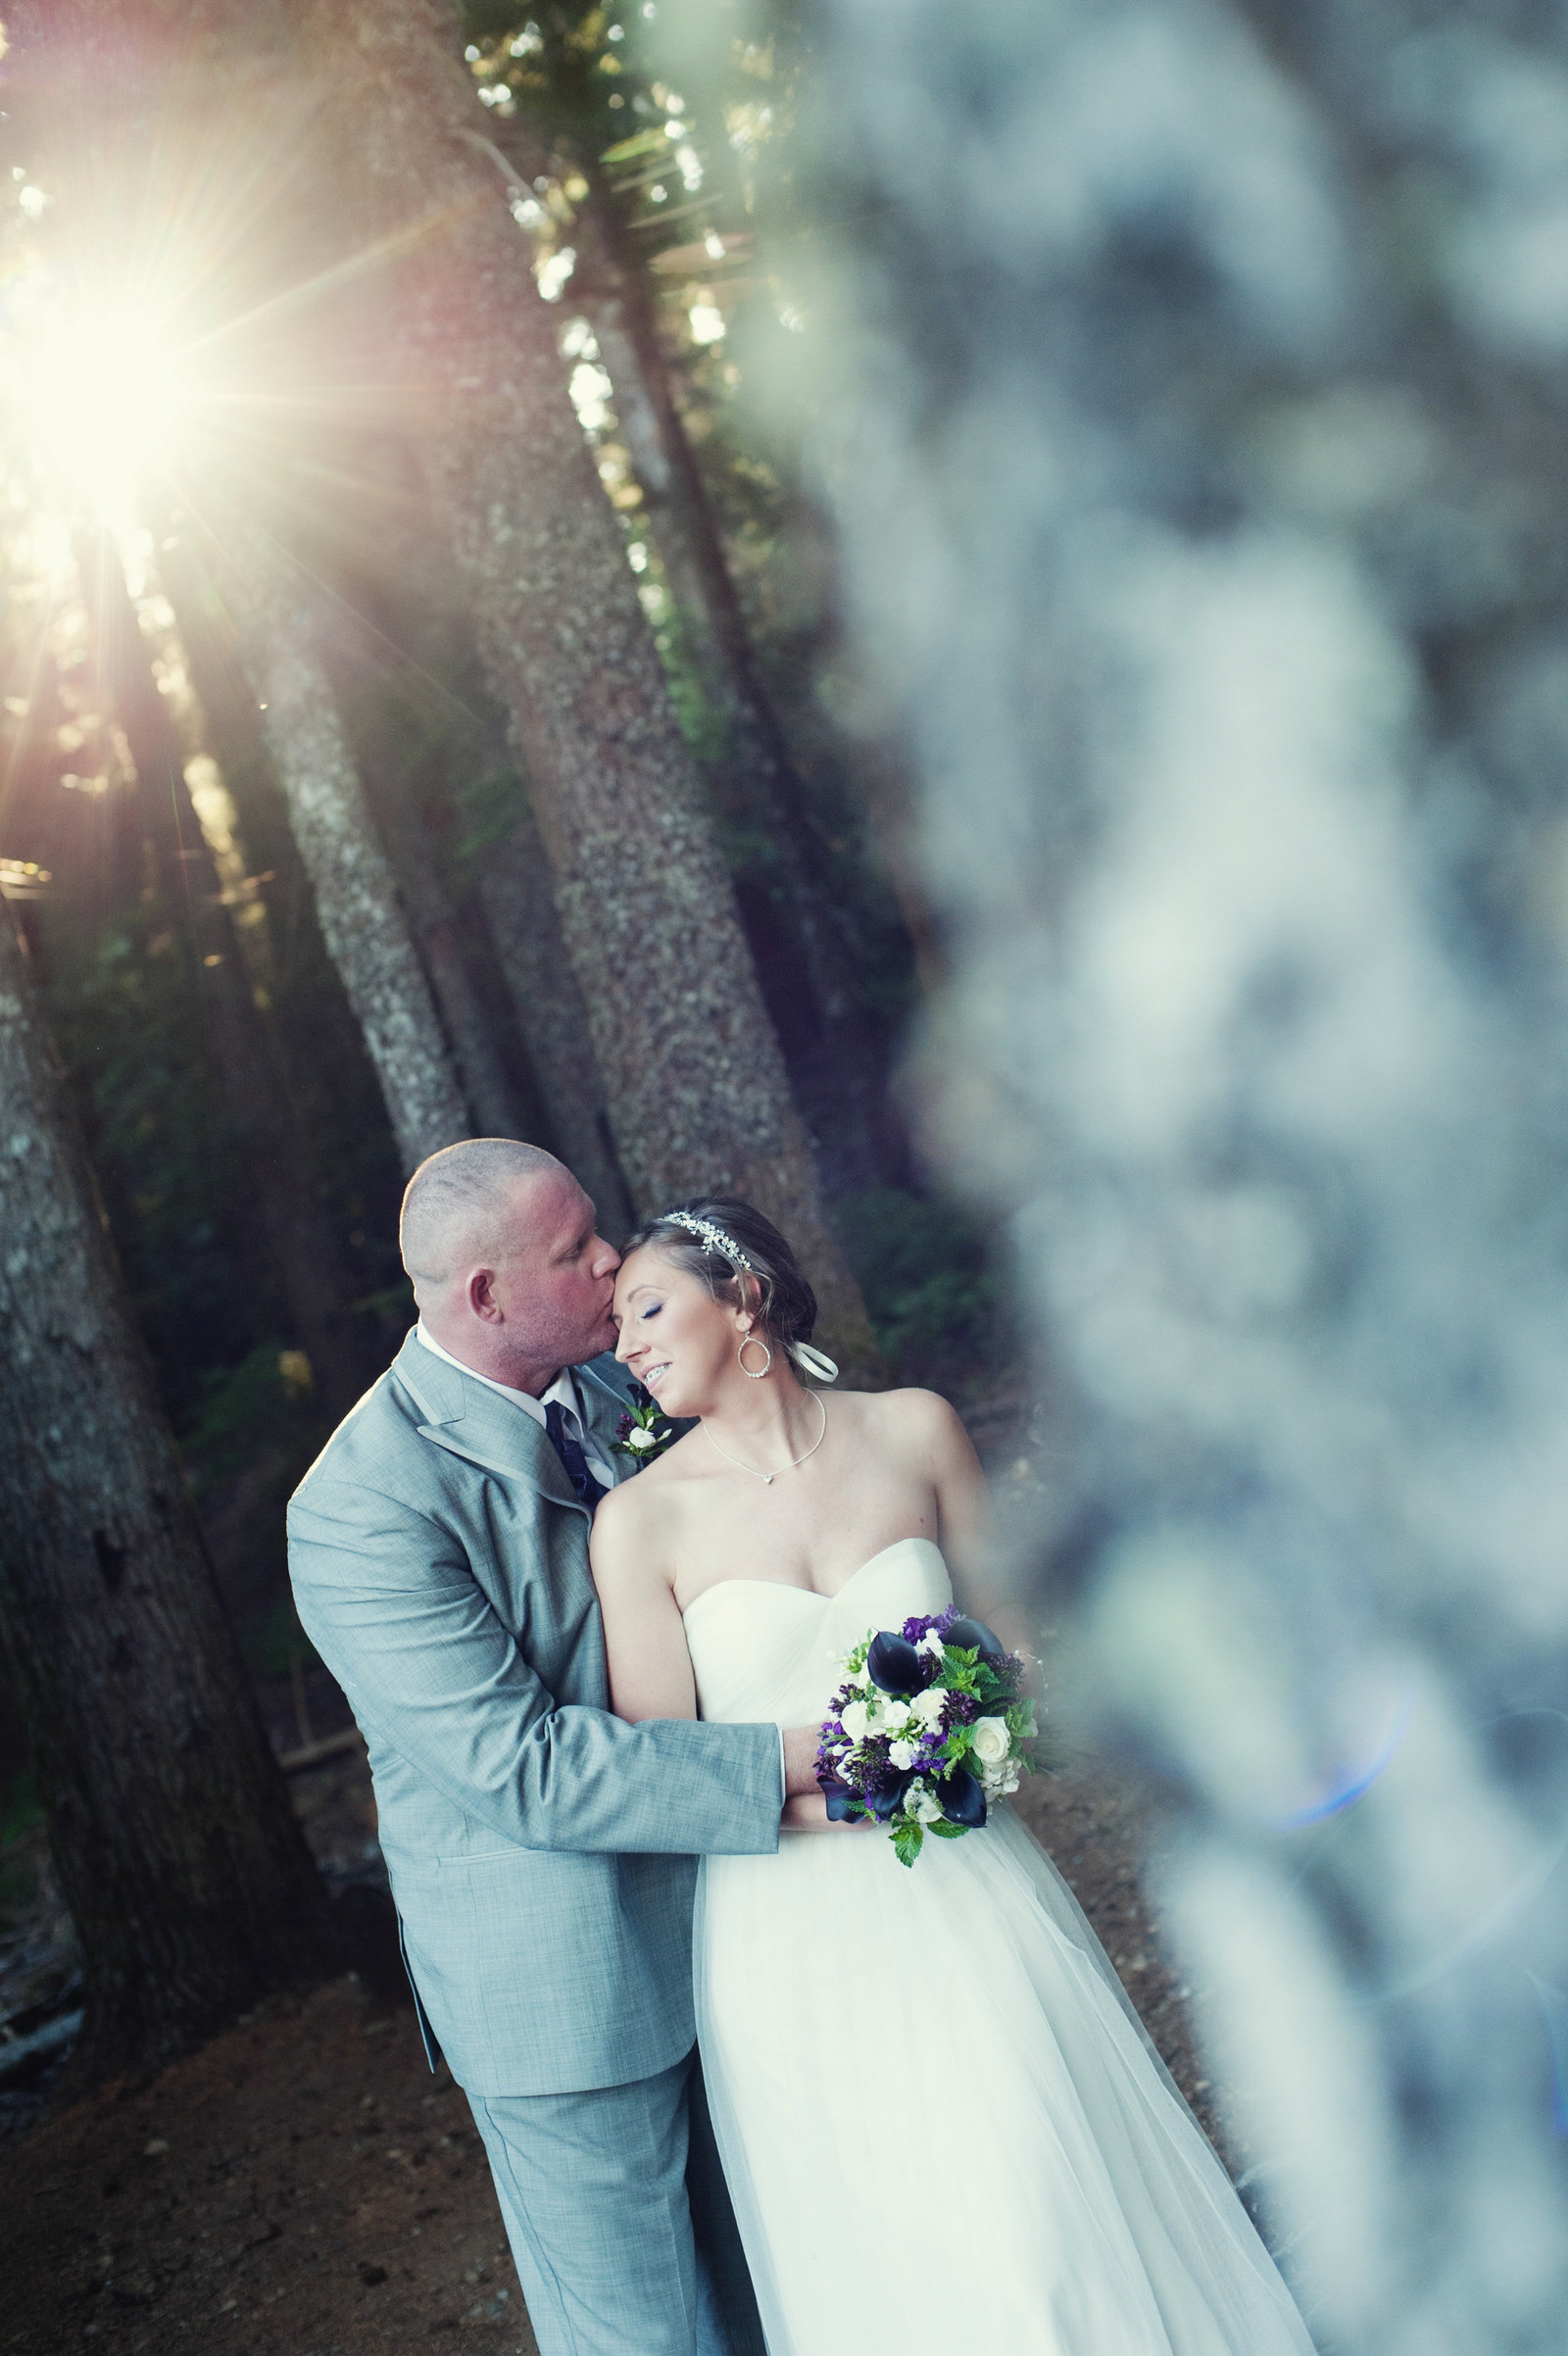 Crystal Genes Photography LOST LAKE WEDDING_140728-192444